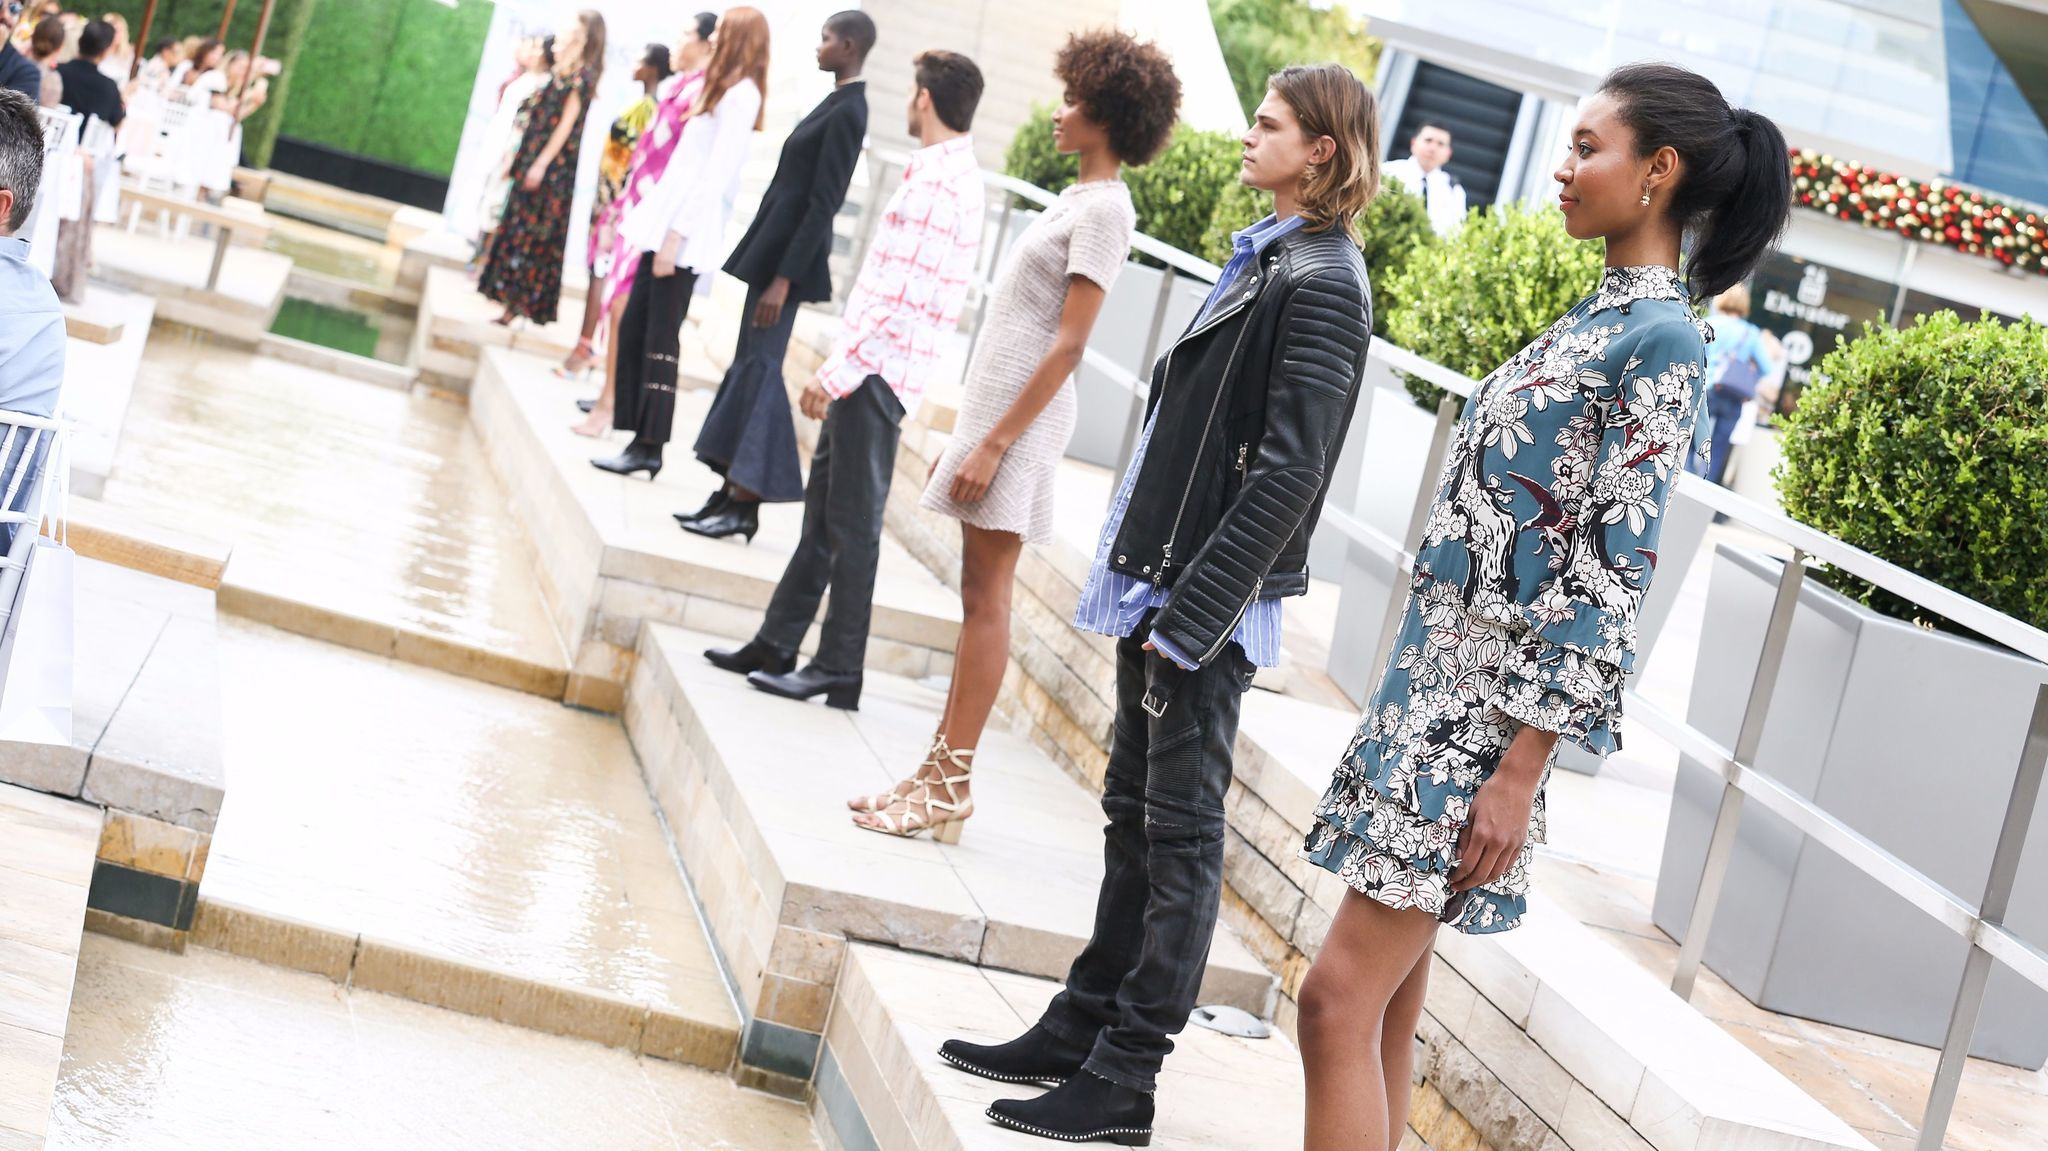 A fashion show at South Coast Plaza marks the arrival of the Webster's first West Coast brick-and-mortar store in November 2016.